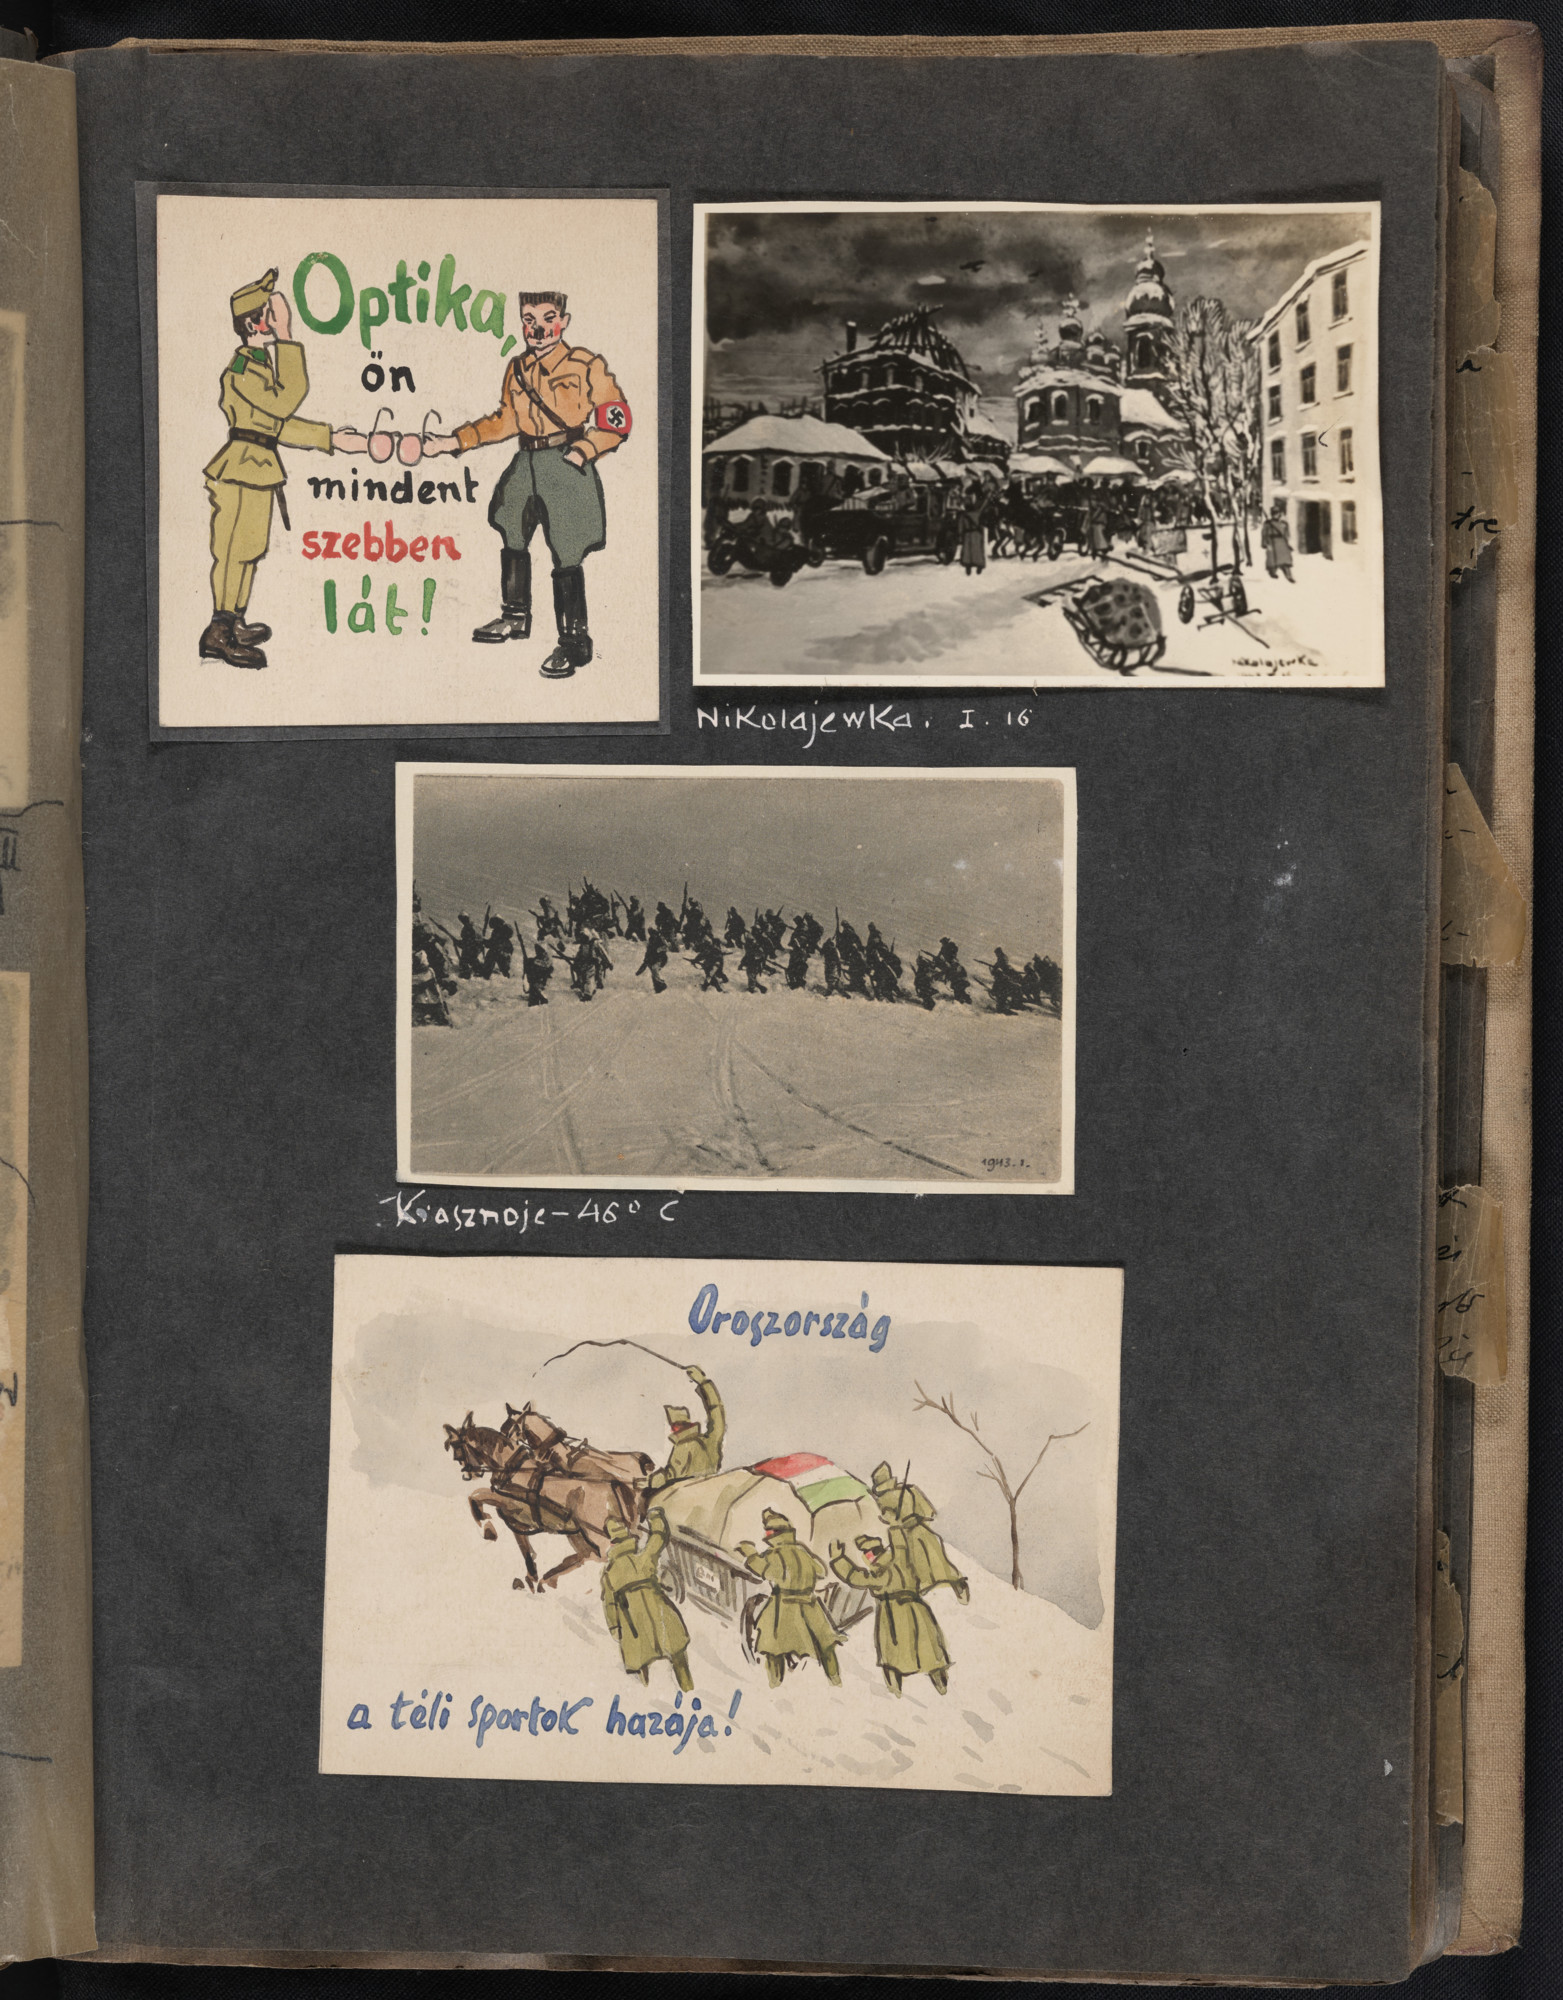 Middle image: A photo of a painting by Beifeld showing retreating Hungarian soldiers in January 1943 moving through the snow with their rifles near Krasnoye, where the temperature has reached -46 degrees celsius.  One page of an illustrated album produced by Gyorgy Beifeld (1902-1982), a Hungarian Jew from Budapest, who was drafted into the Munkaszolgalat (Hungarian Labor Service system) and spent more than a year on the Soviet front, from April 1942 through May 1943.  The album contains 402 drawings and watercolors by Byfield, as well as a narrative of his experiences.